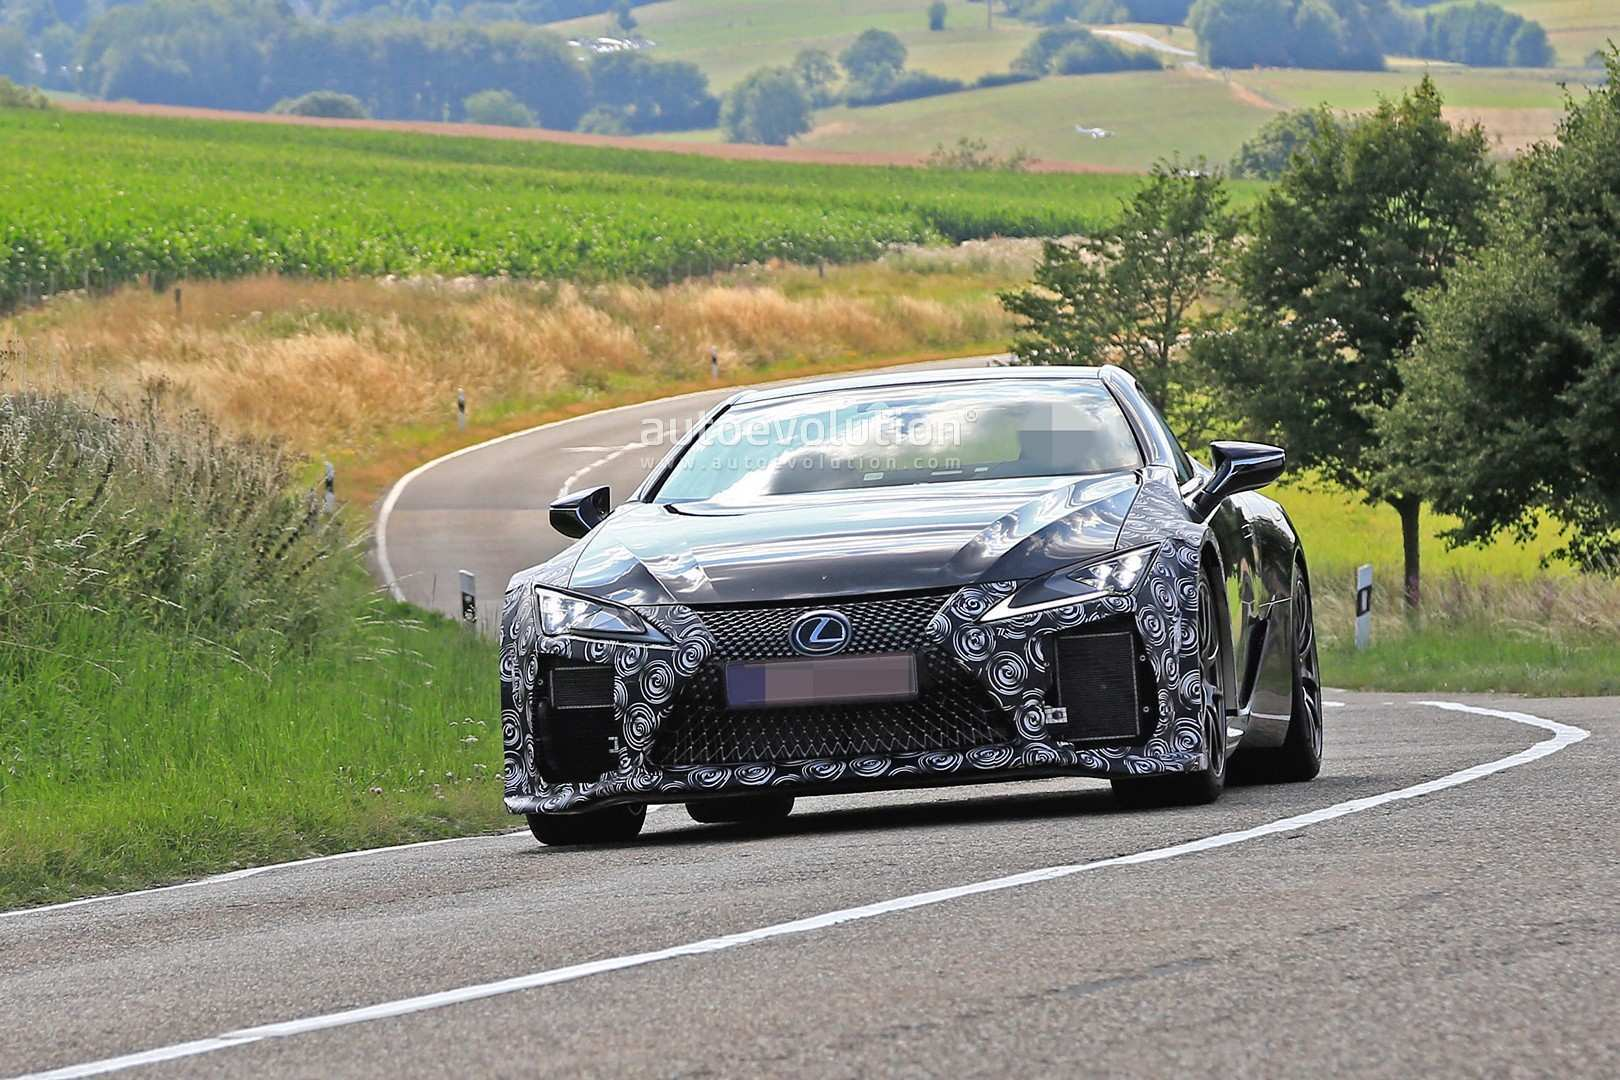 30 Concept of 2020 Lexus Lf Lc Wallpaper for 2020 Lexus Lf Lc